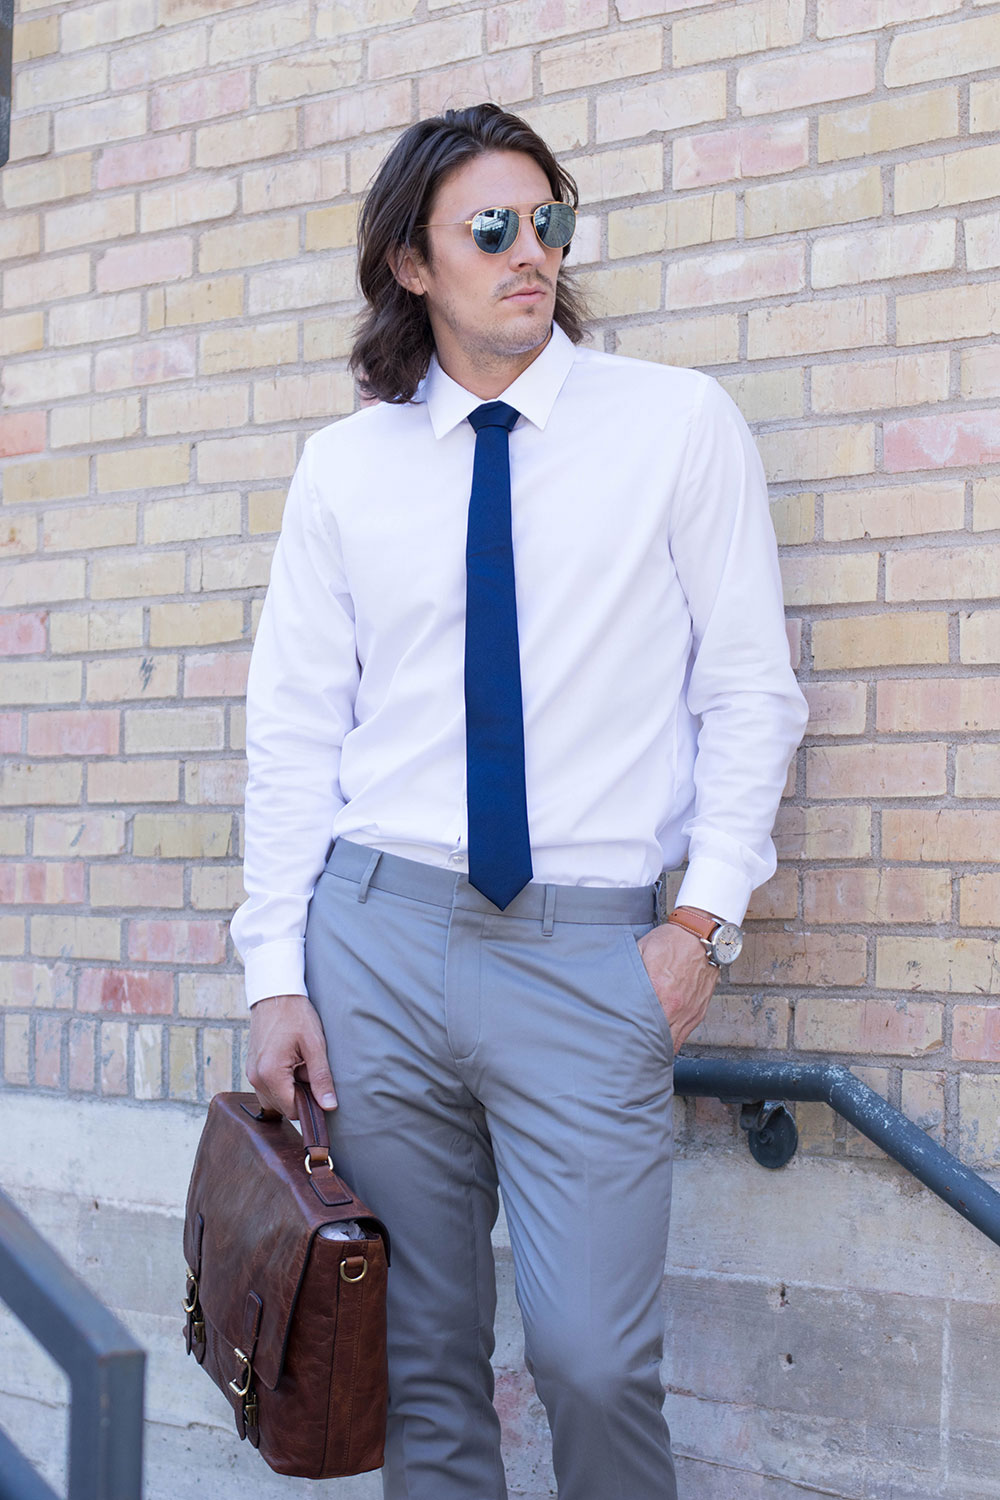 White Shirt, Blue Tie, Brown Shoes, Leather Bag